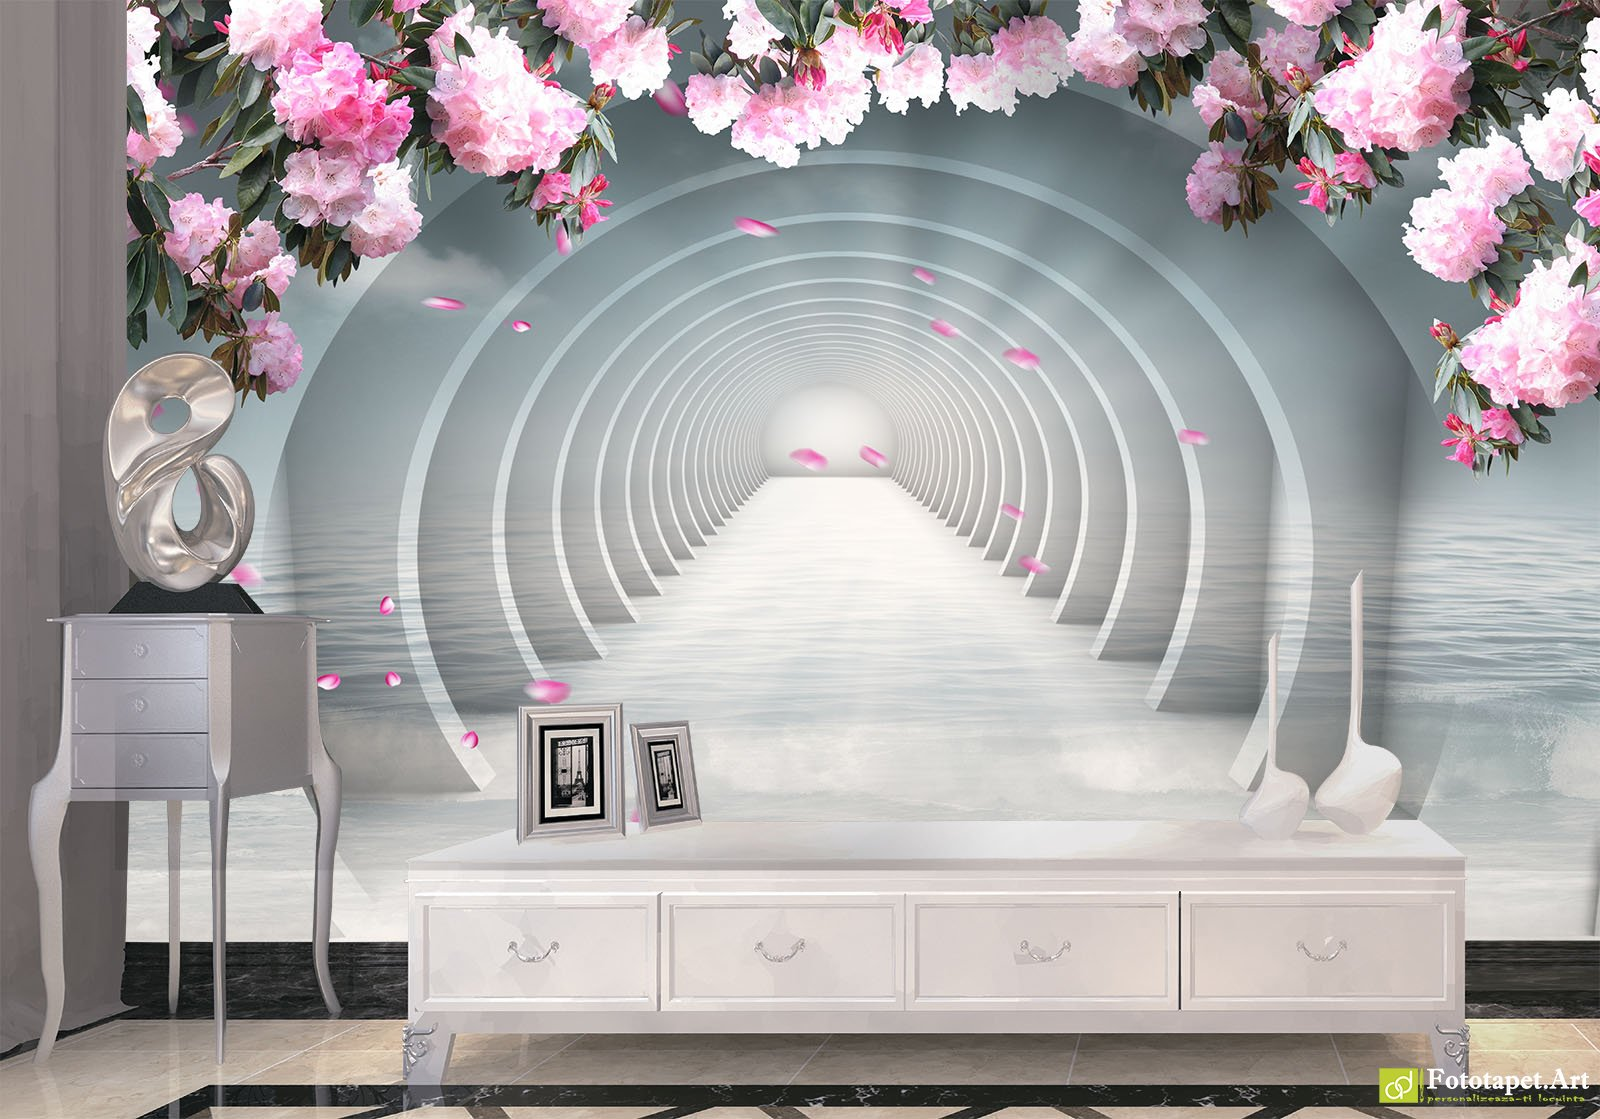 Wallpaper 3D Effect Tunnel With Flowers 4